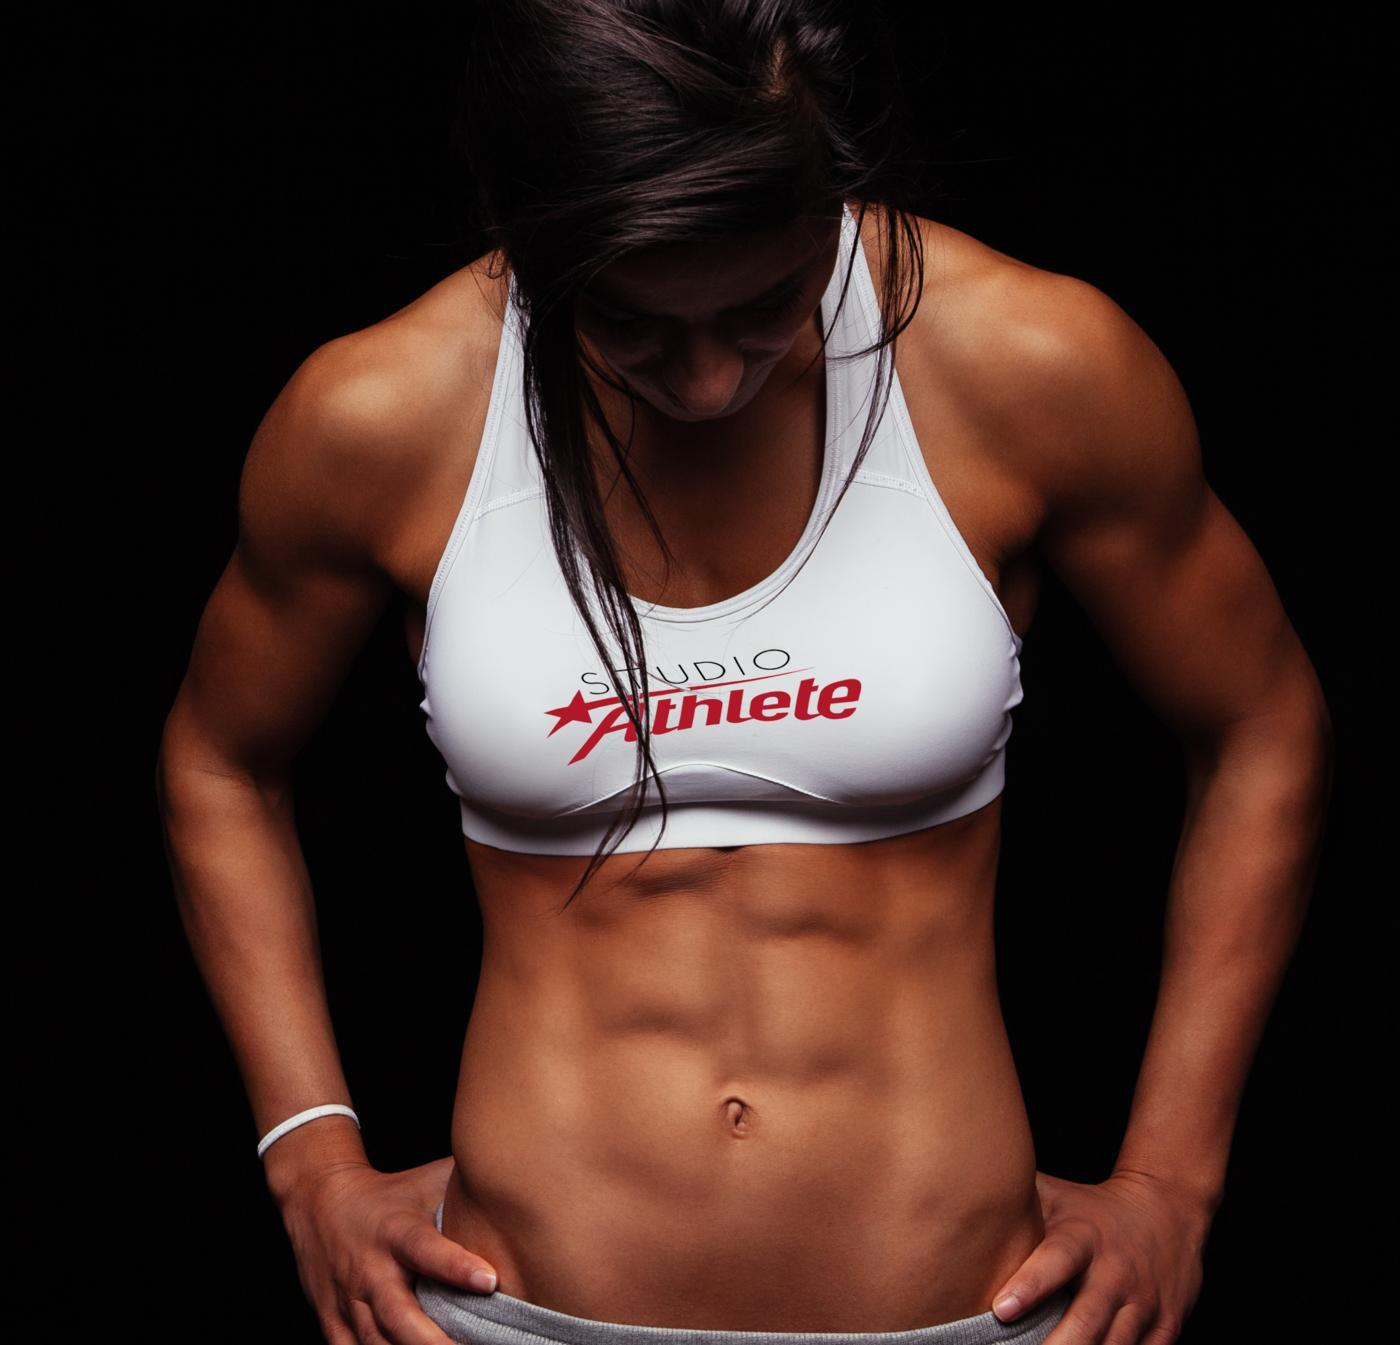 f69b05f257 Benefits of wearing a sports bra even if you are not into sports ...